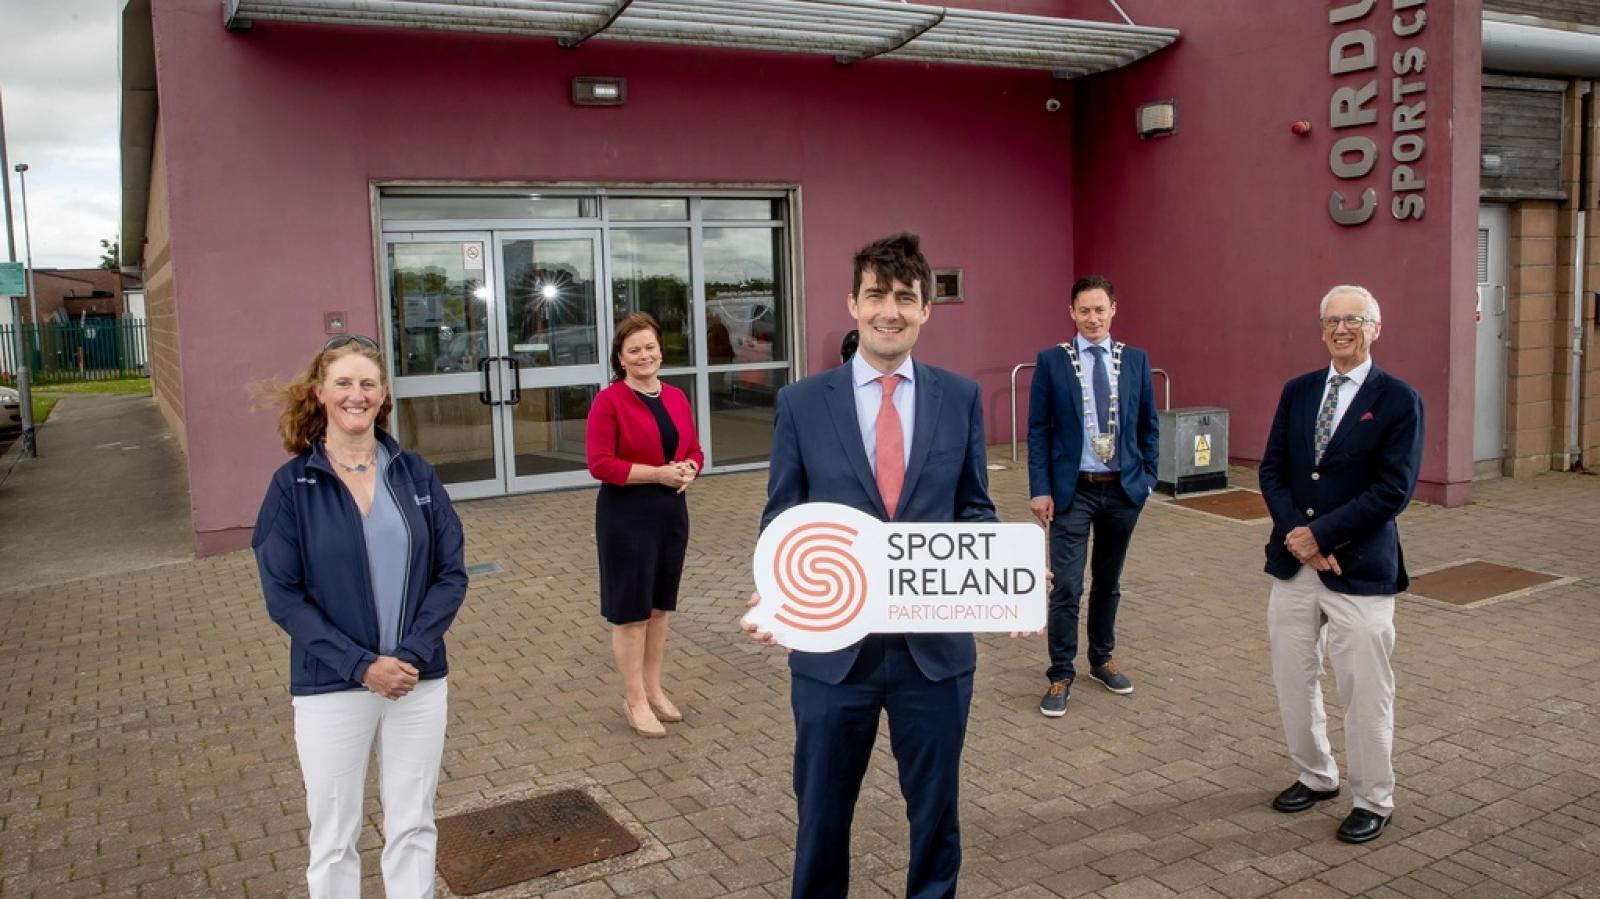 Limerick Sports Partnership secures funding - €365,160 has been secured for a wide range of sport and physical activity measures in Limerick.